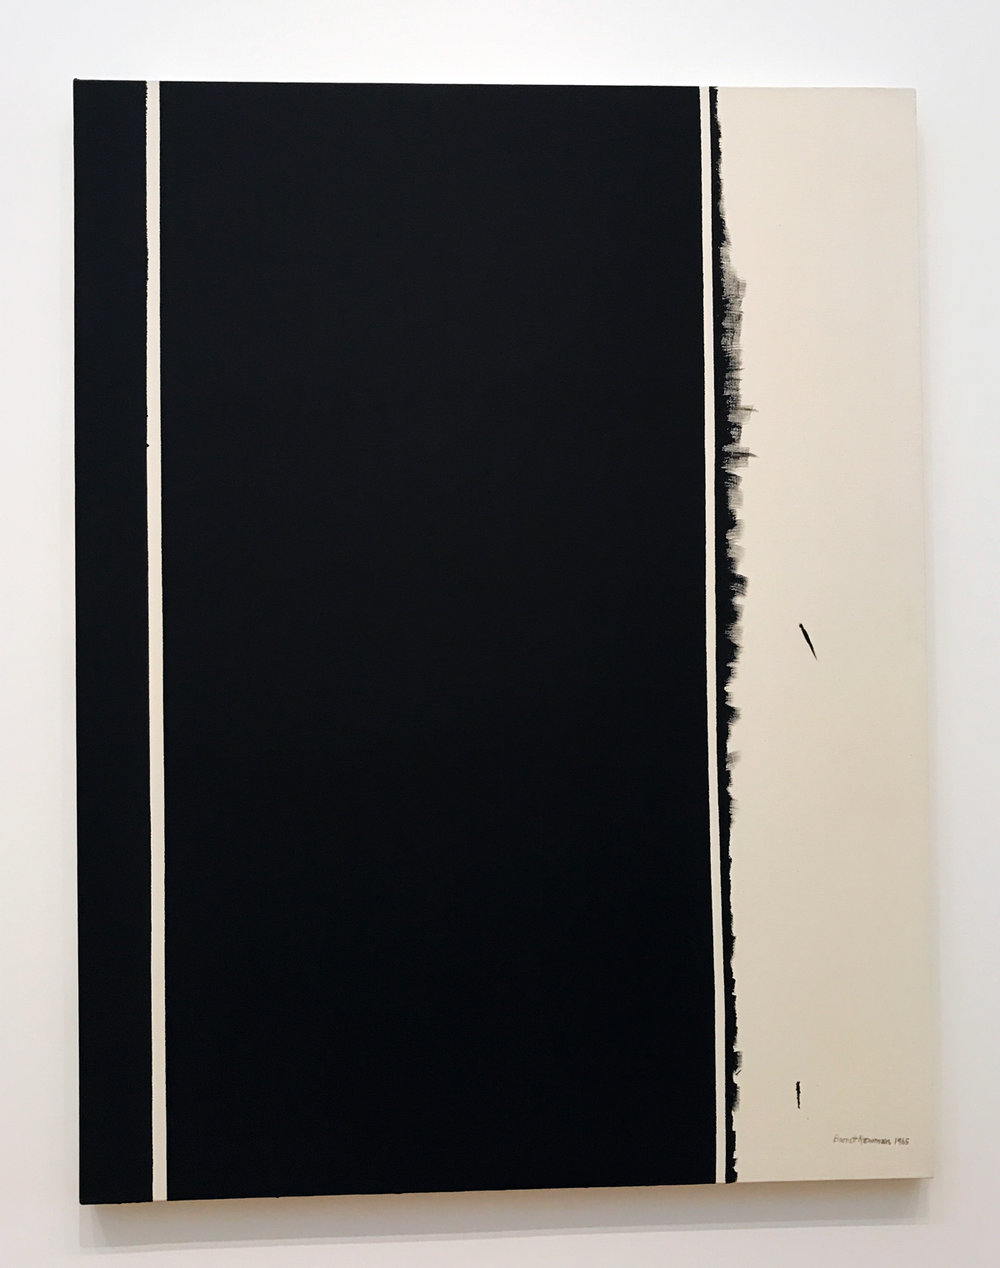 Barnett Newman, The Stations of the Cross